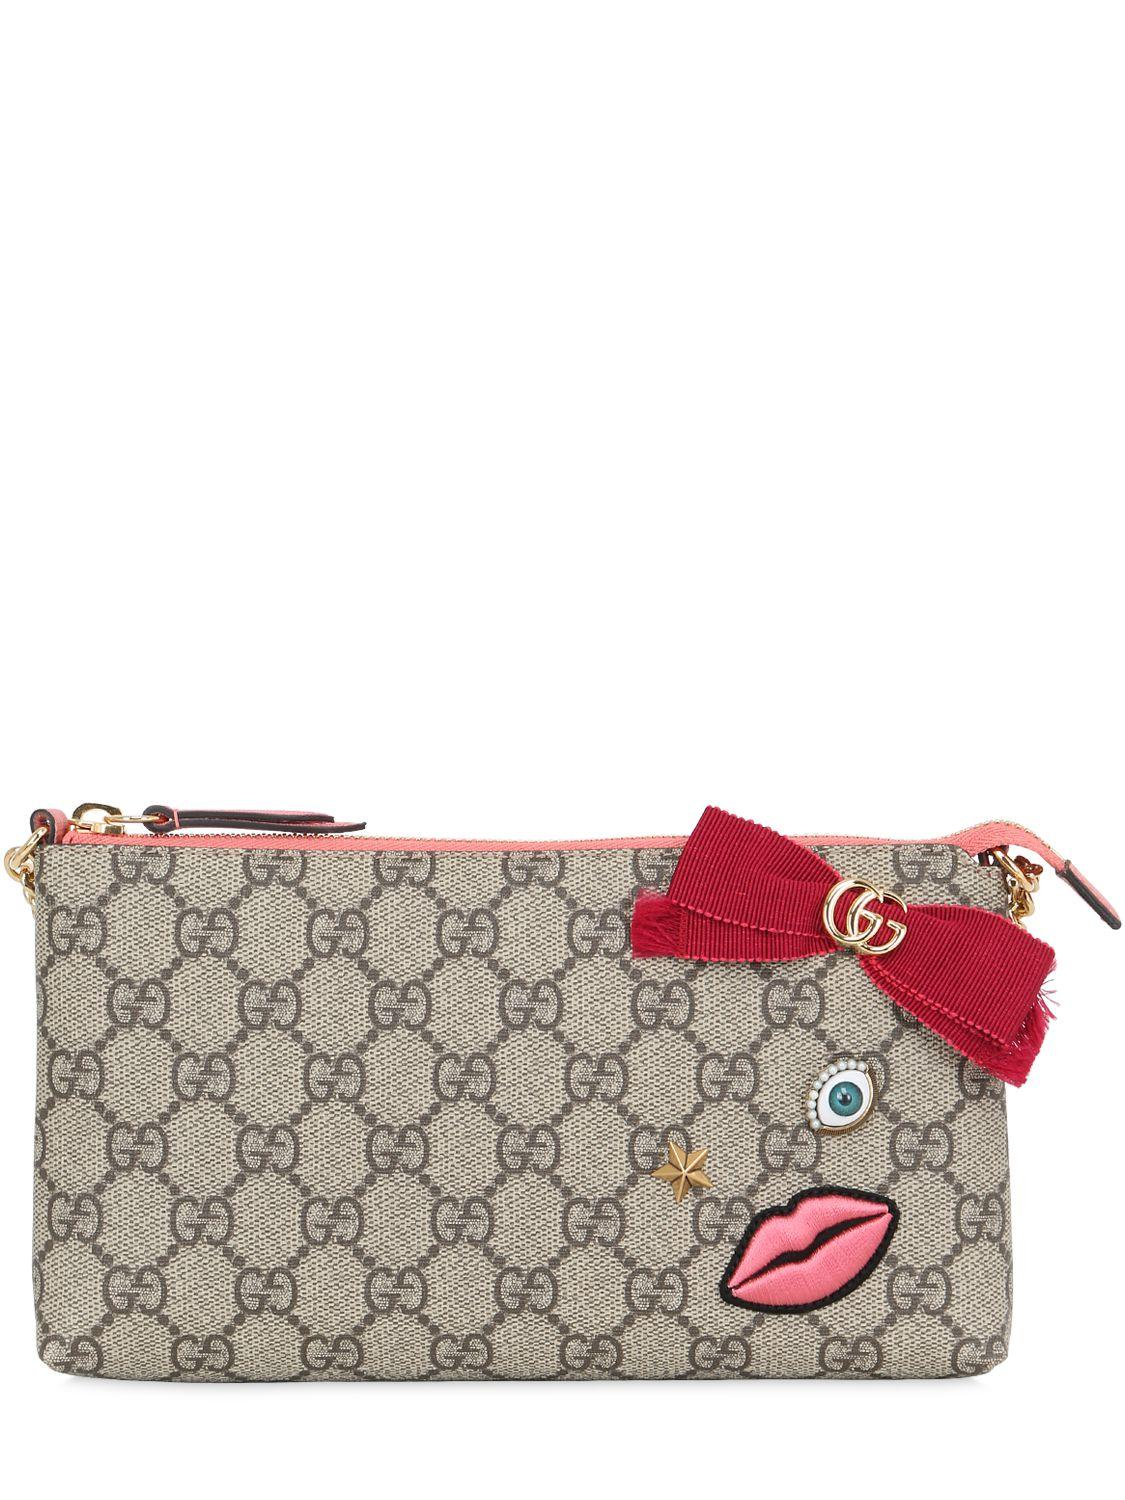 606148fb573 Gucci Circus Embroidered Gg Supreme Clutch - Lyst